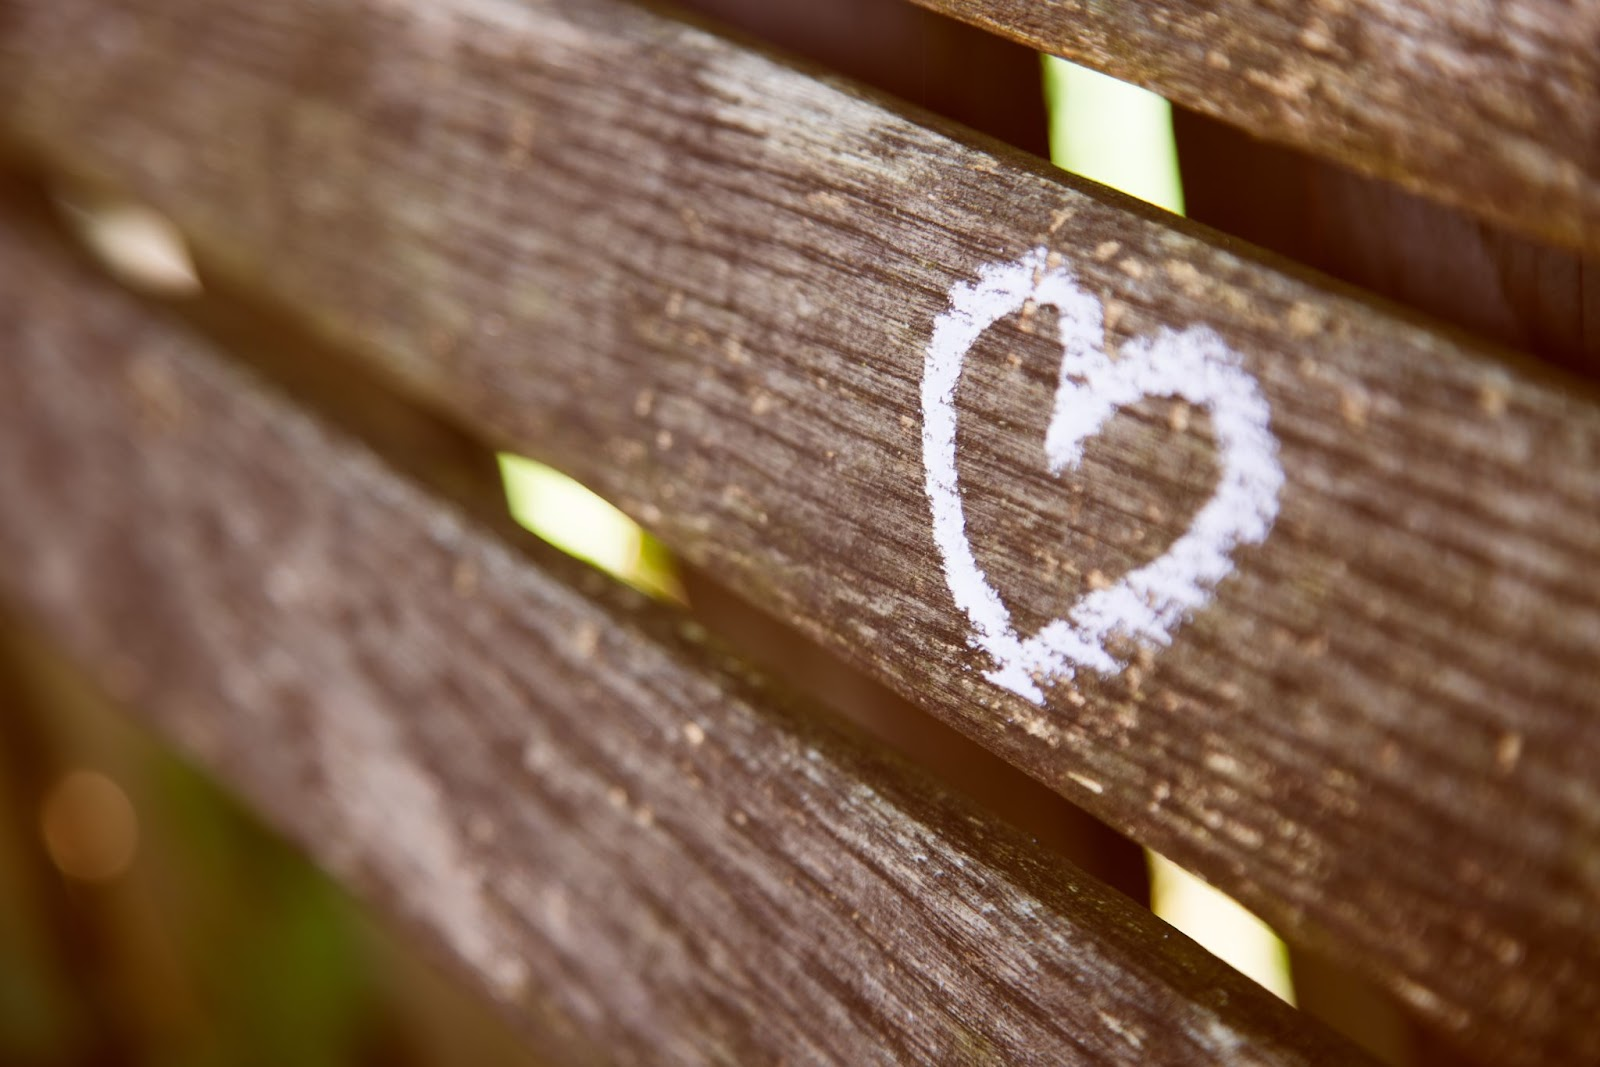 A white heart drawn on a wooden bench